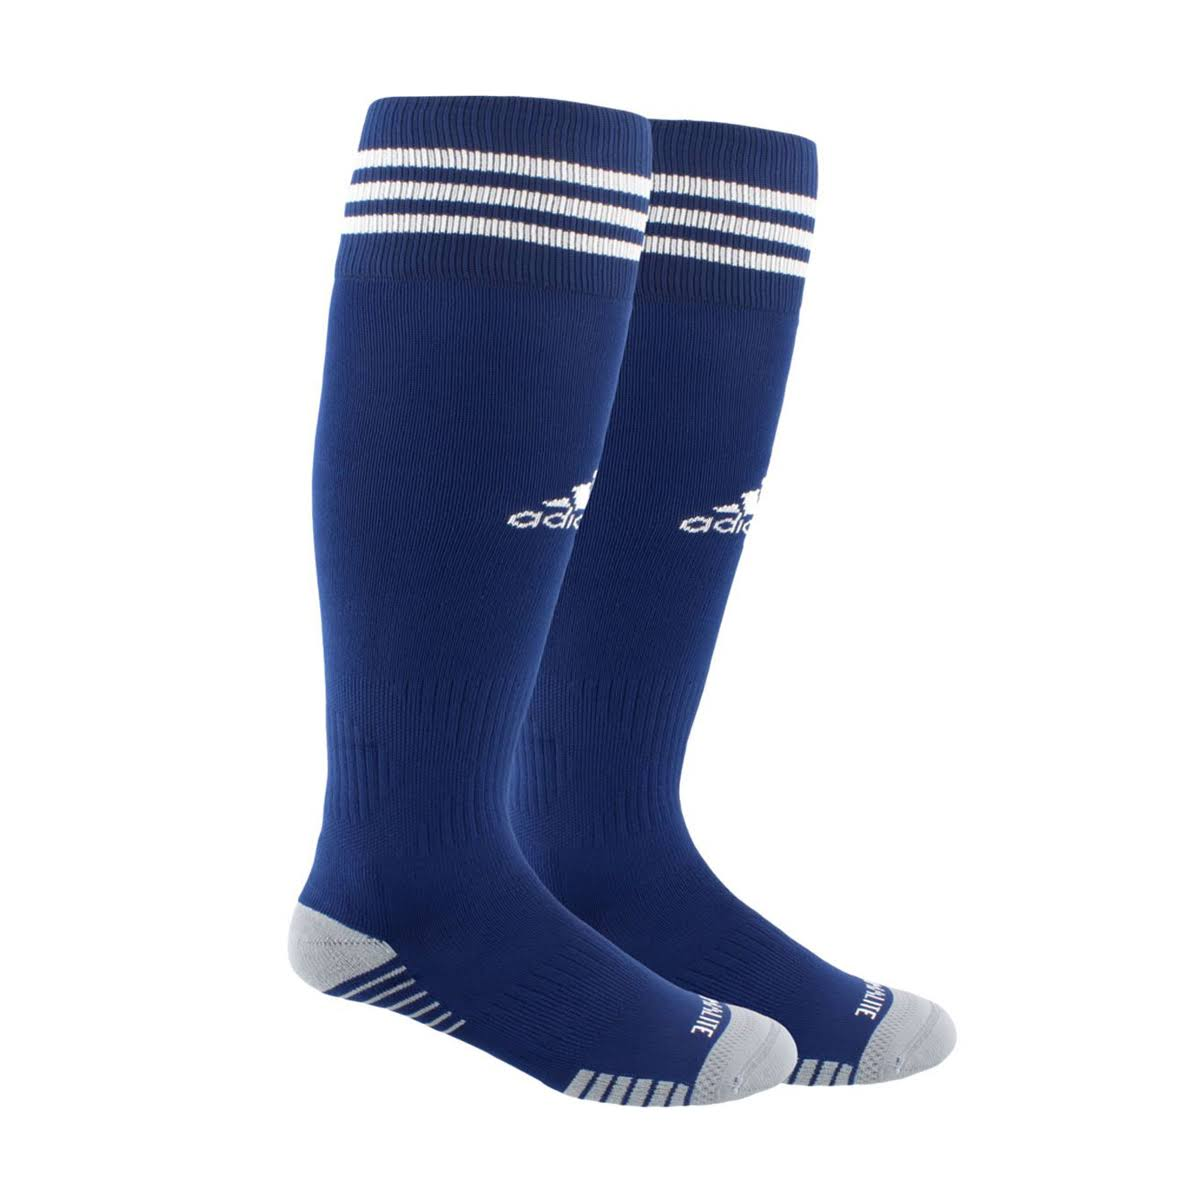 Adidas Copa Zone Cushion IV Socks - Navy/White - S